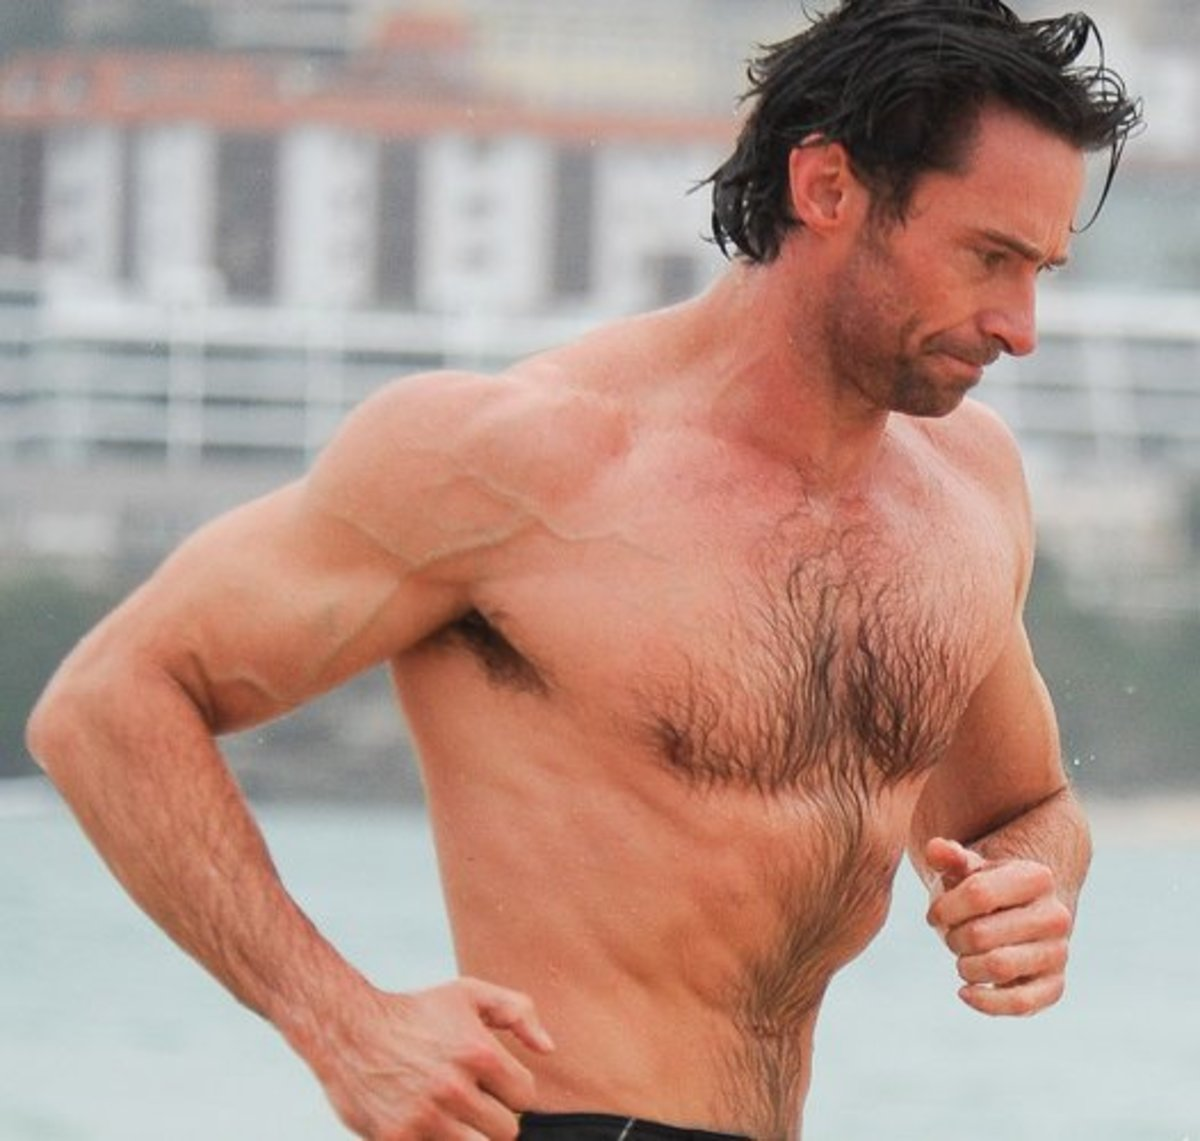 Hugh Jackman is living proof that chest hair on men, in the right amount, looks sexy as hell.